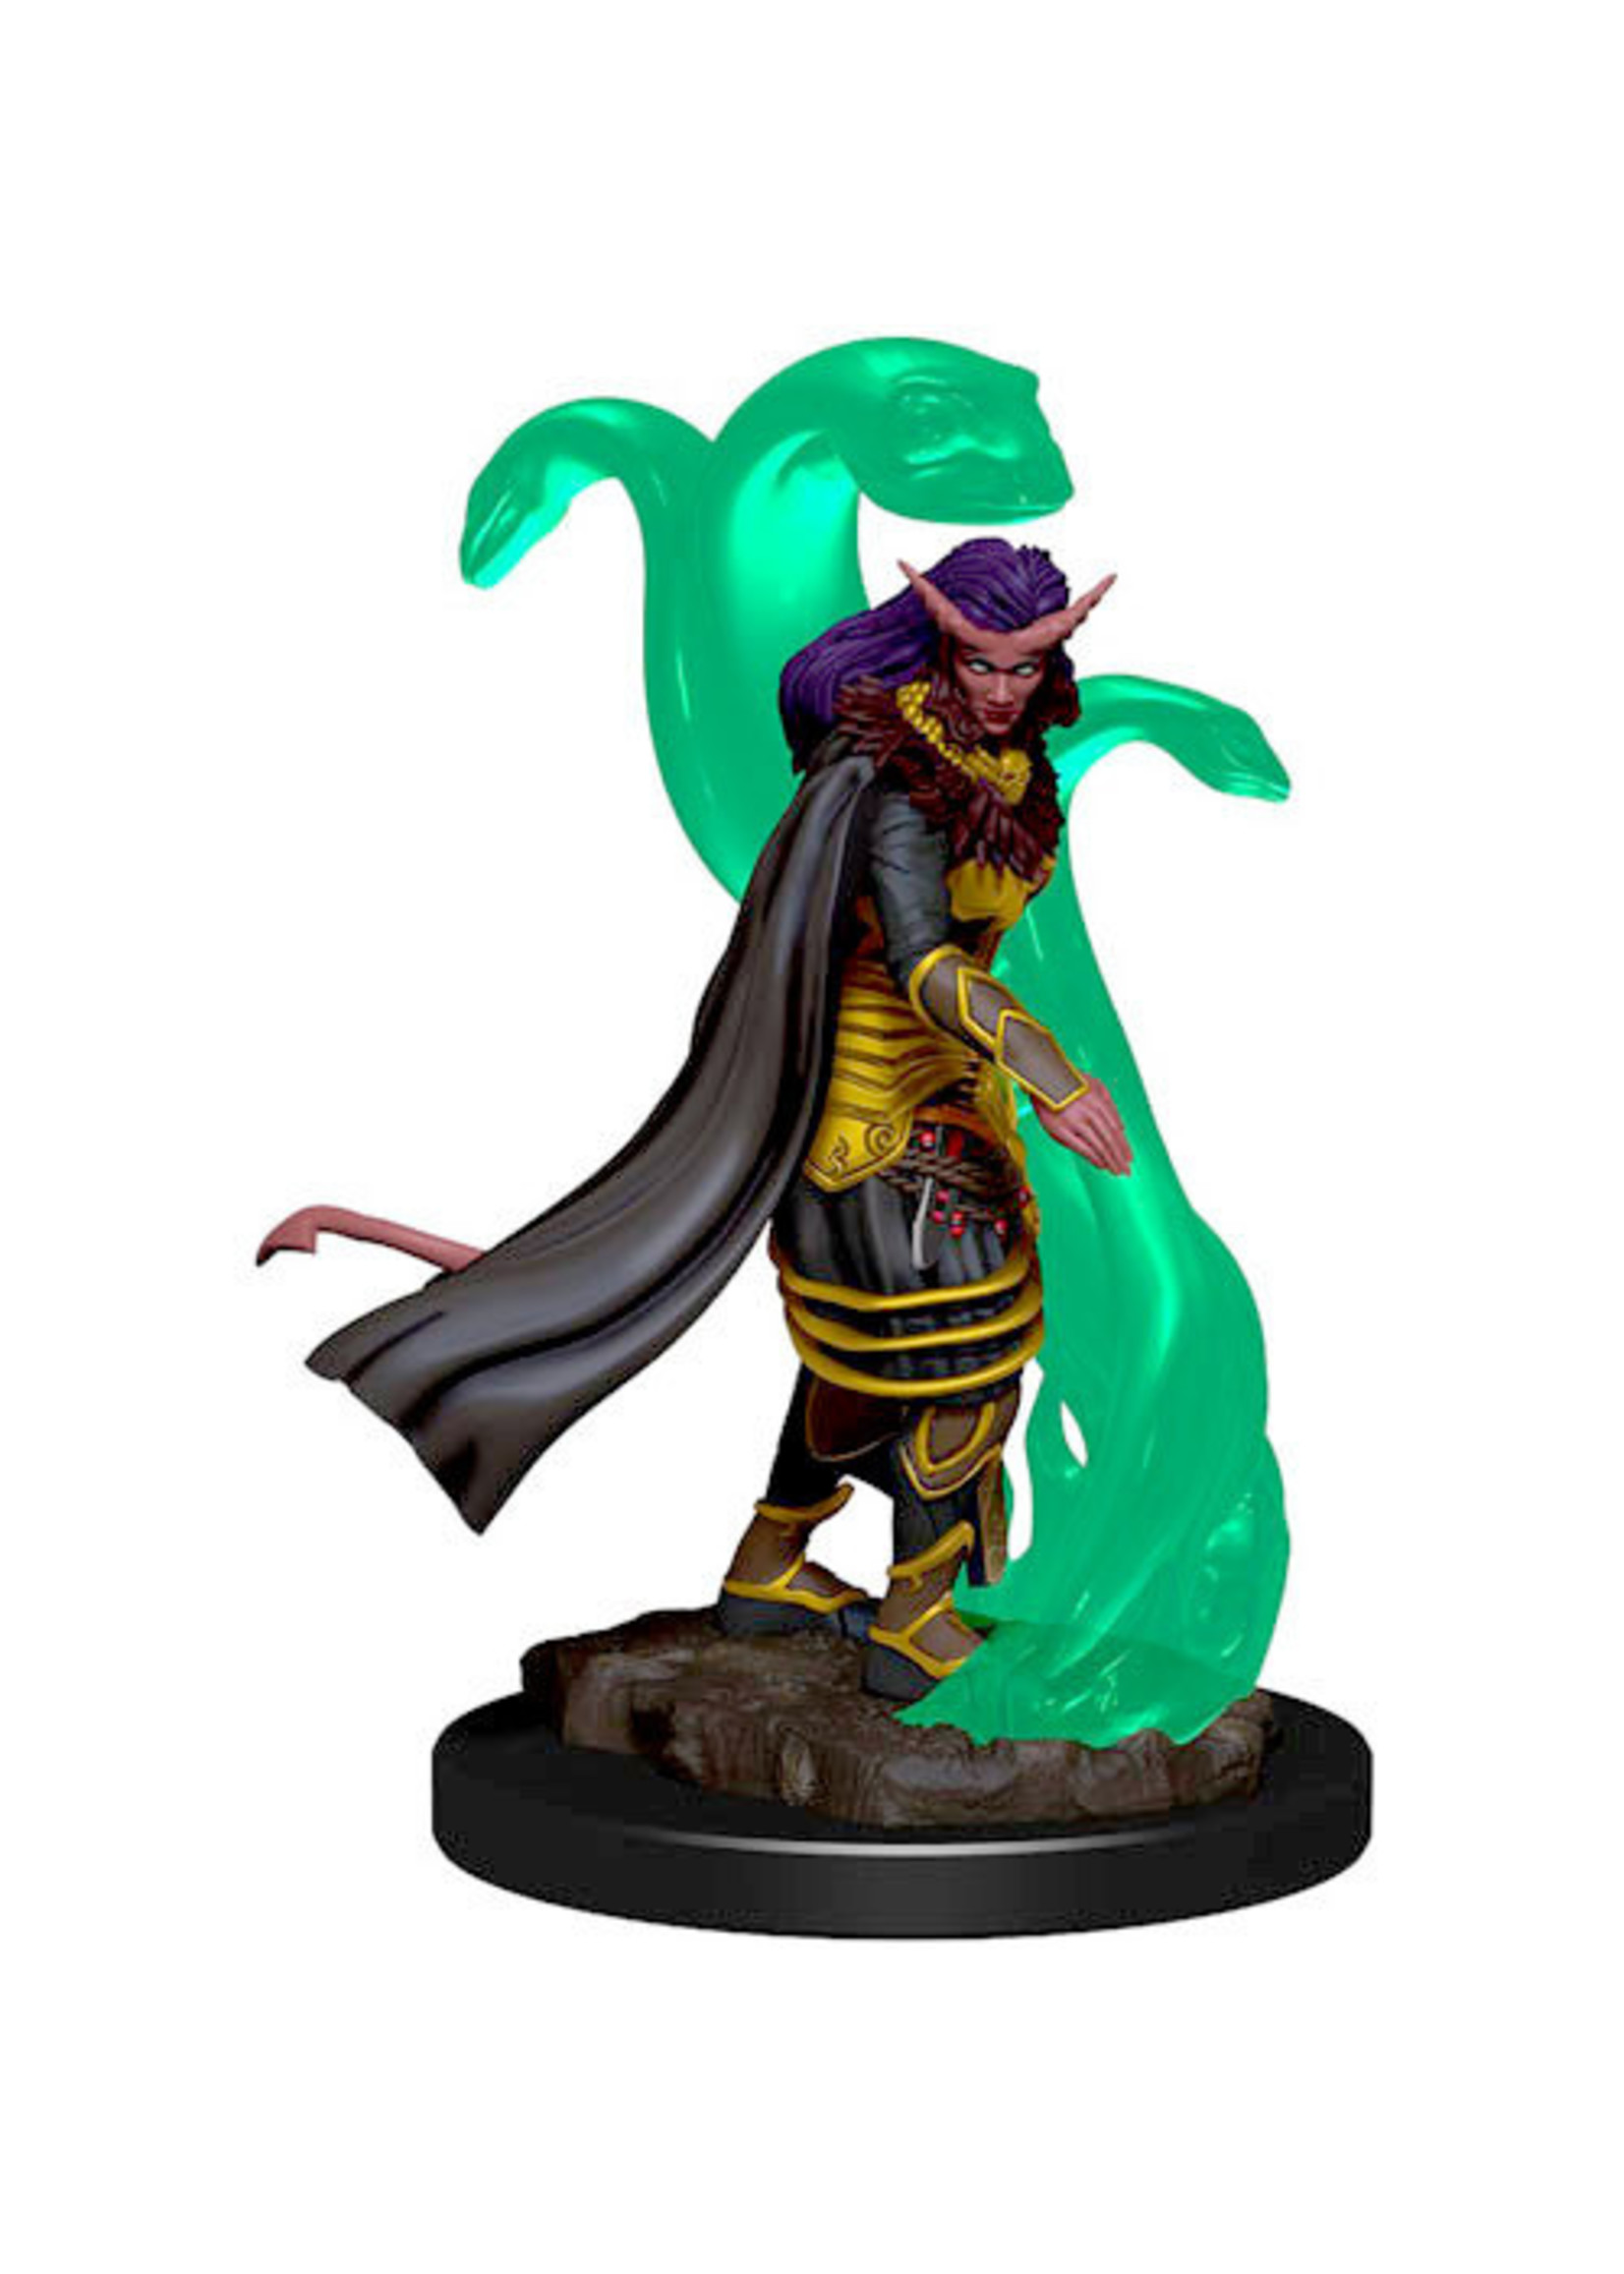 Dungeons & Dragons Icons of the Realms Premium Figures: W1 Tiefling Female Sorcerer